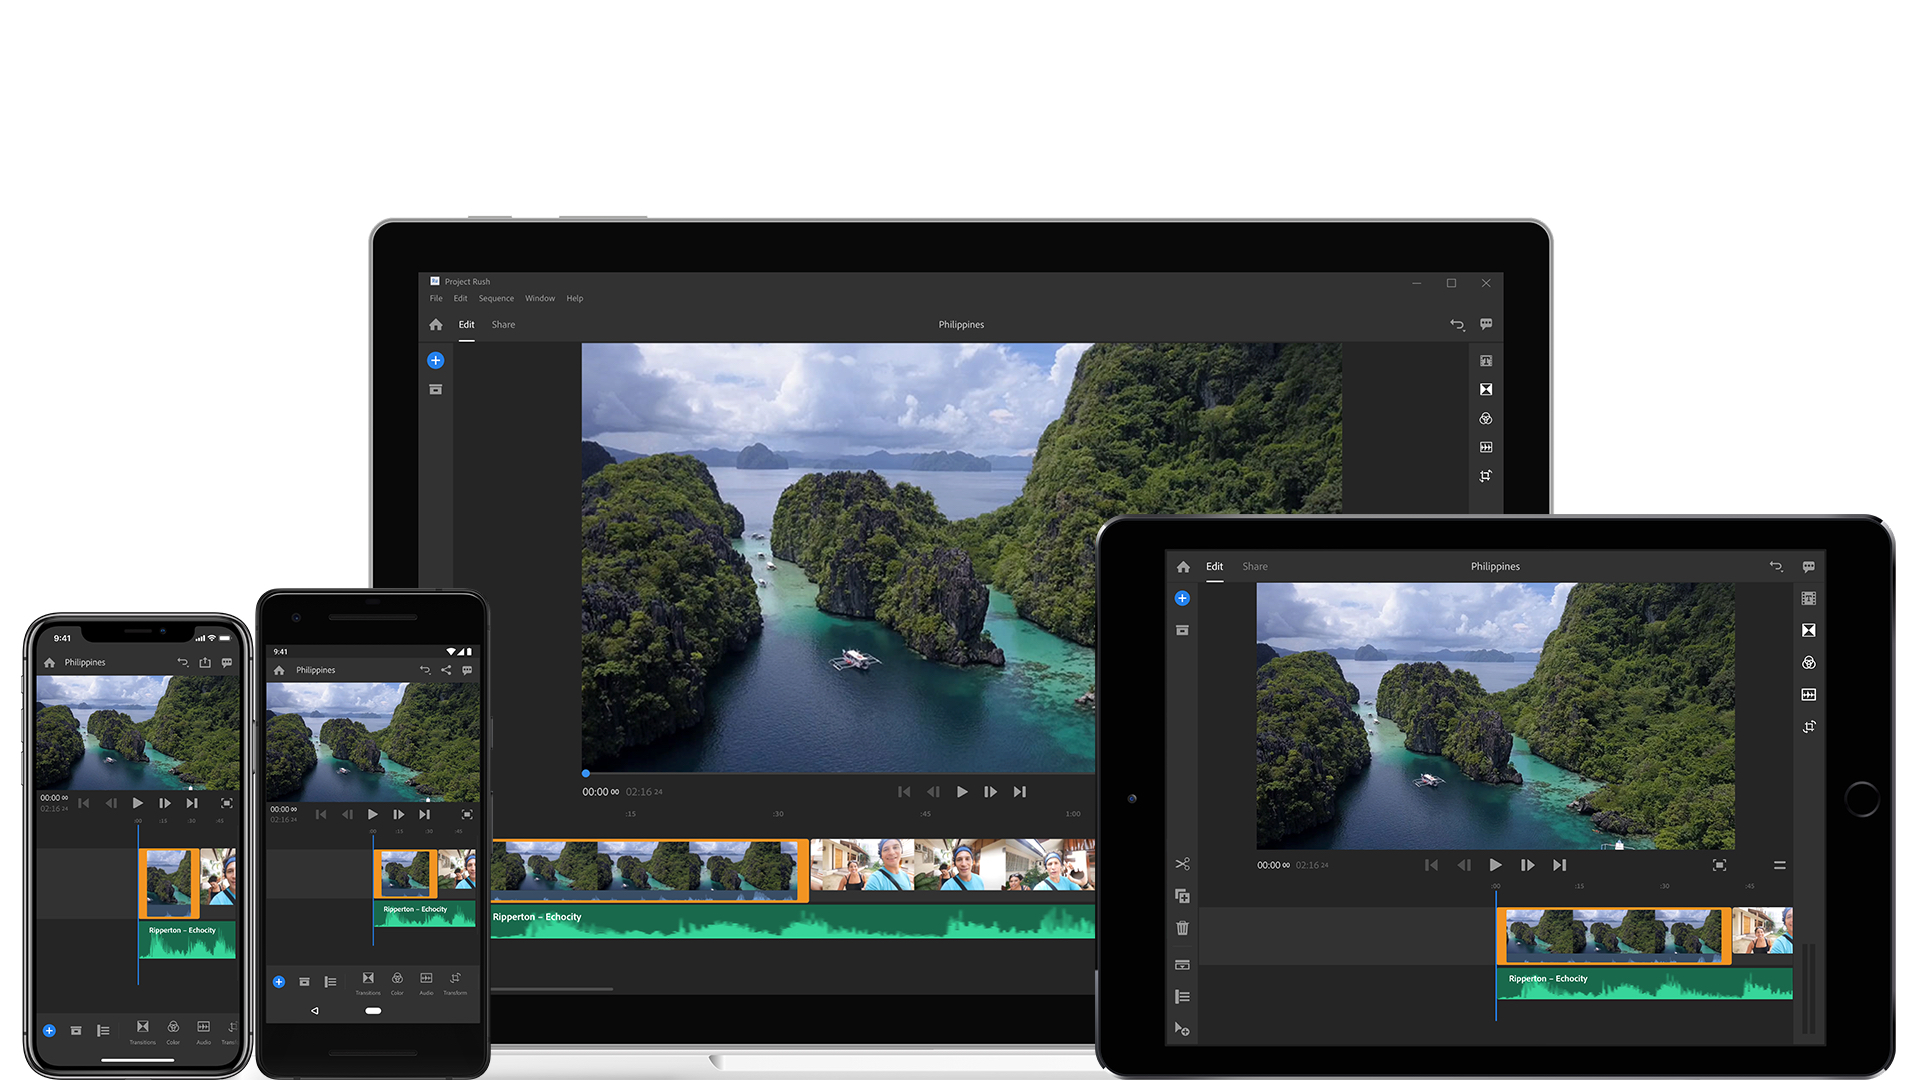 Project Rush can be used seamlessly across devices through Adobe Creative Cloud.